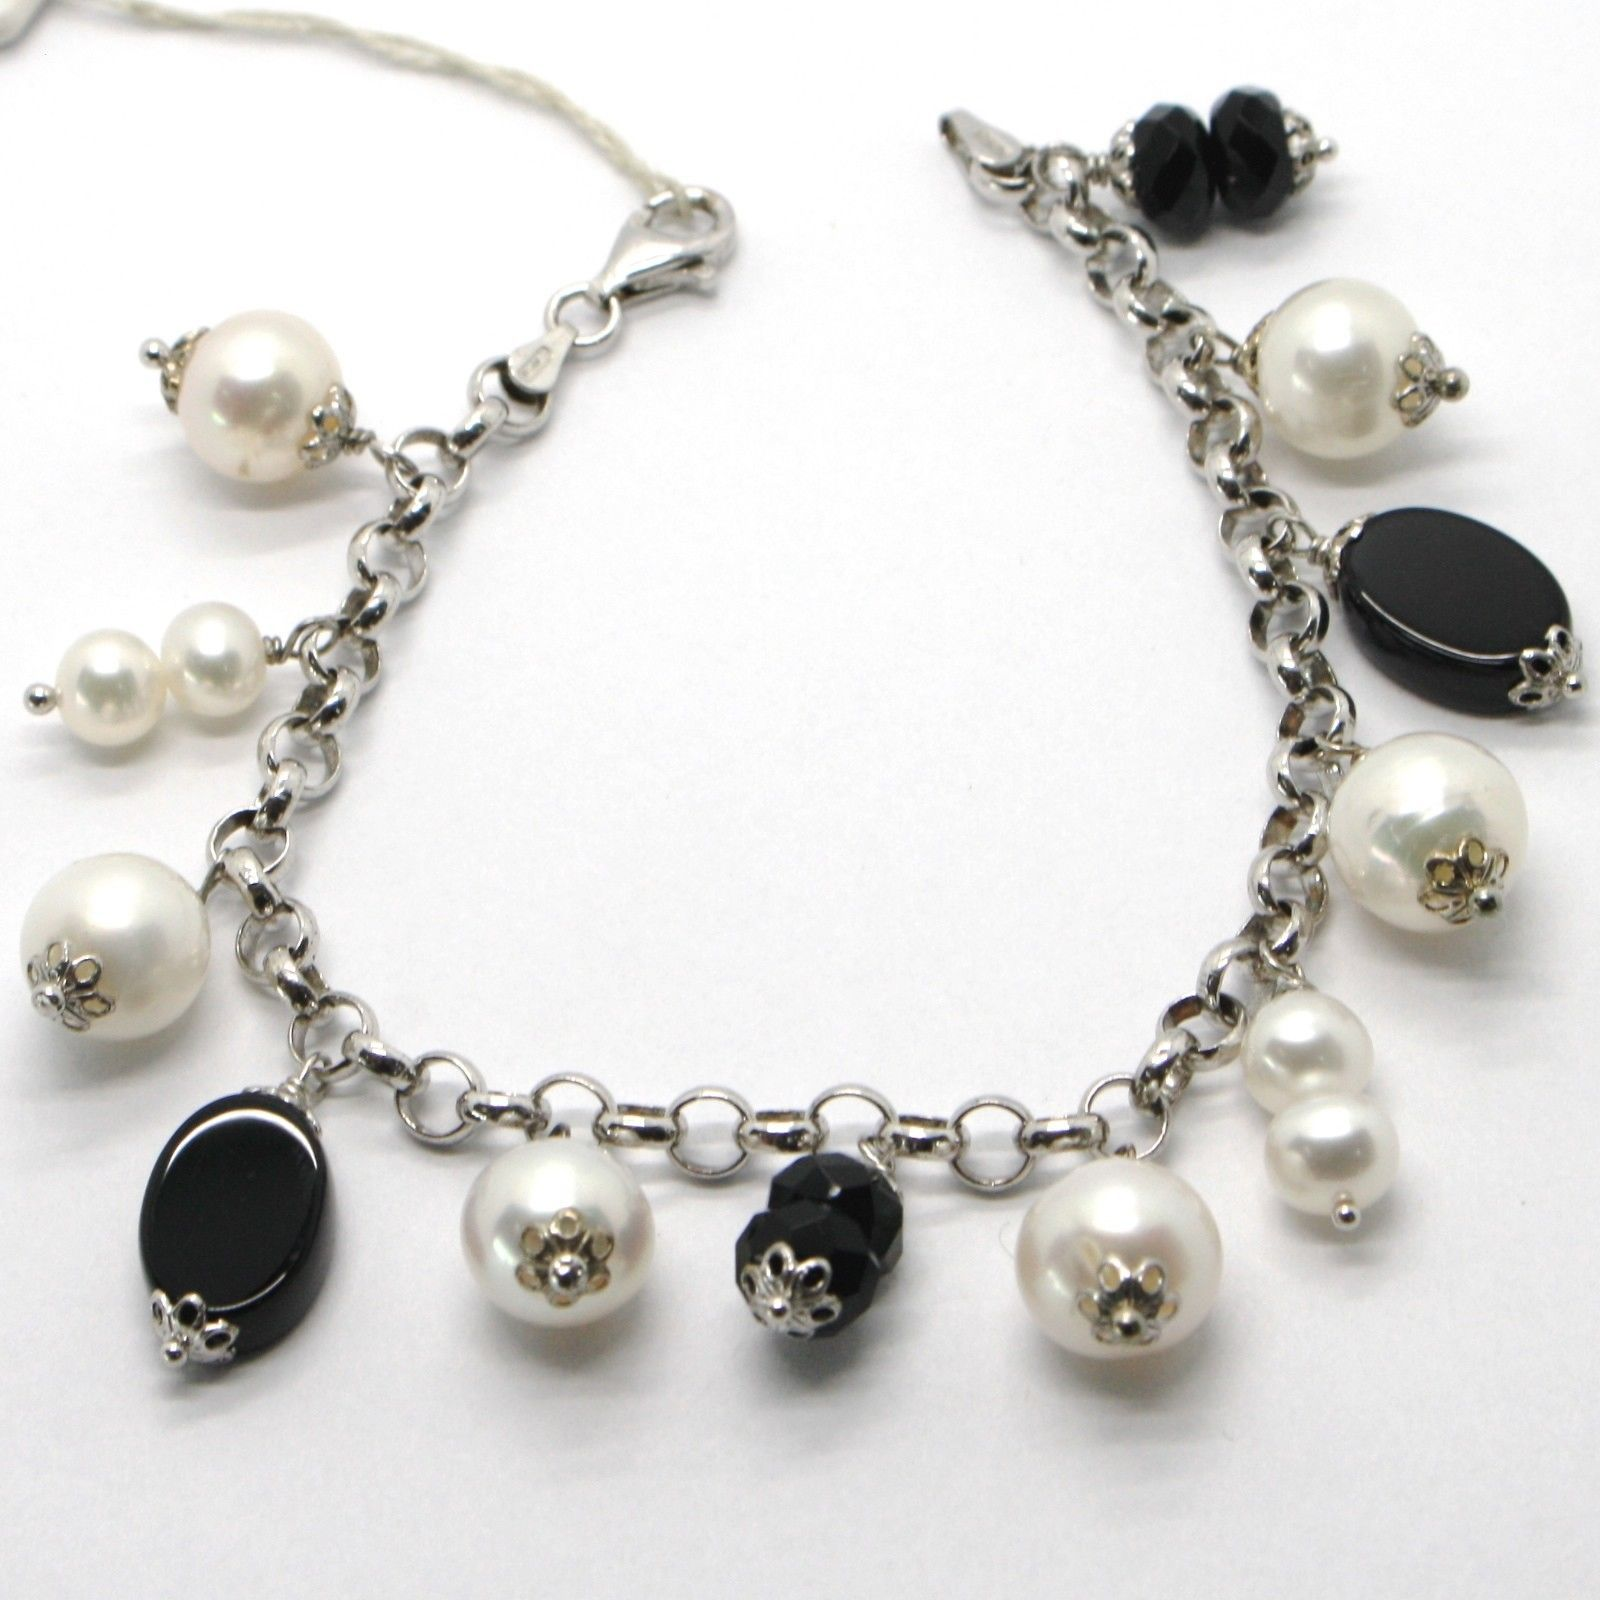 925 STERLING SILVER BRACELET WITH OVAL BLACK ONYX WHITE PEARLS PENDANT, CHARMS